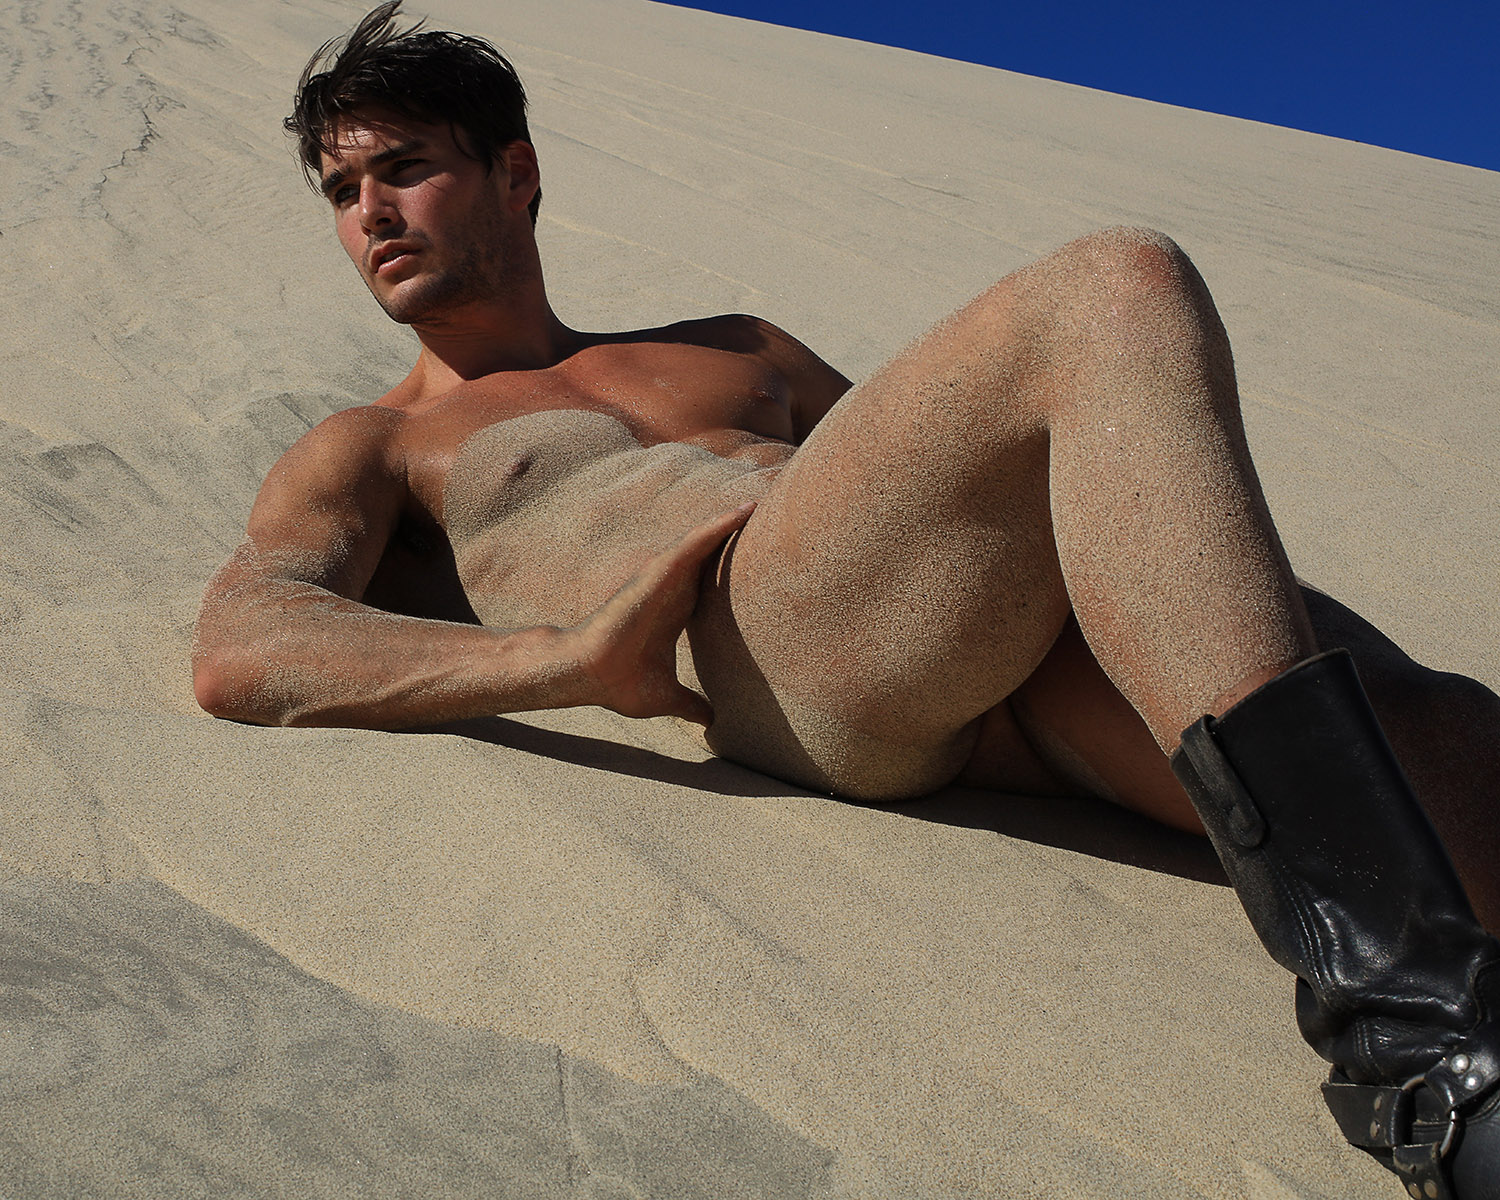 ethan parker nude pics